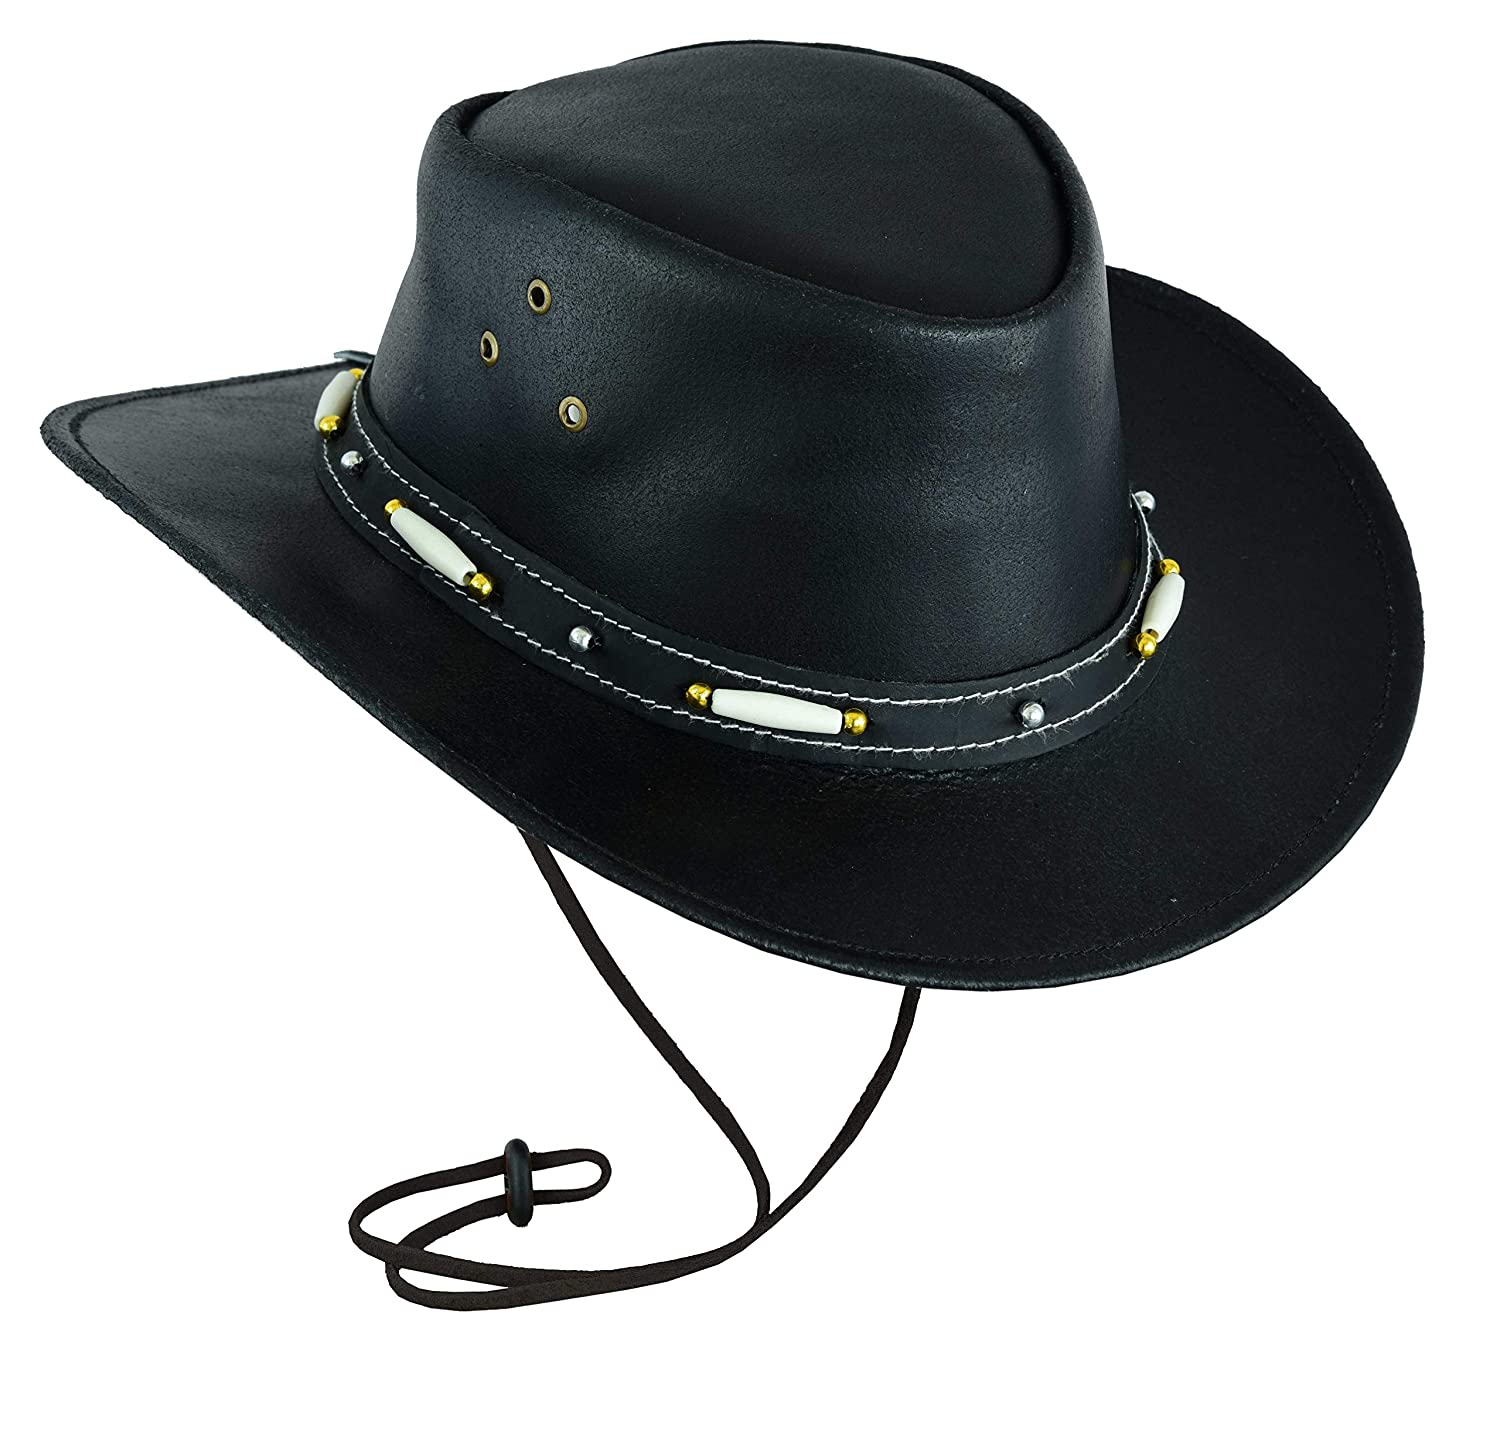 Black Classic Western Style Cowboy Leather hat